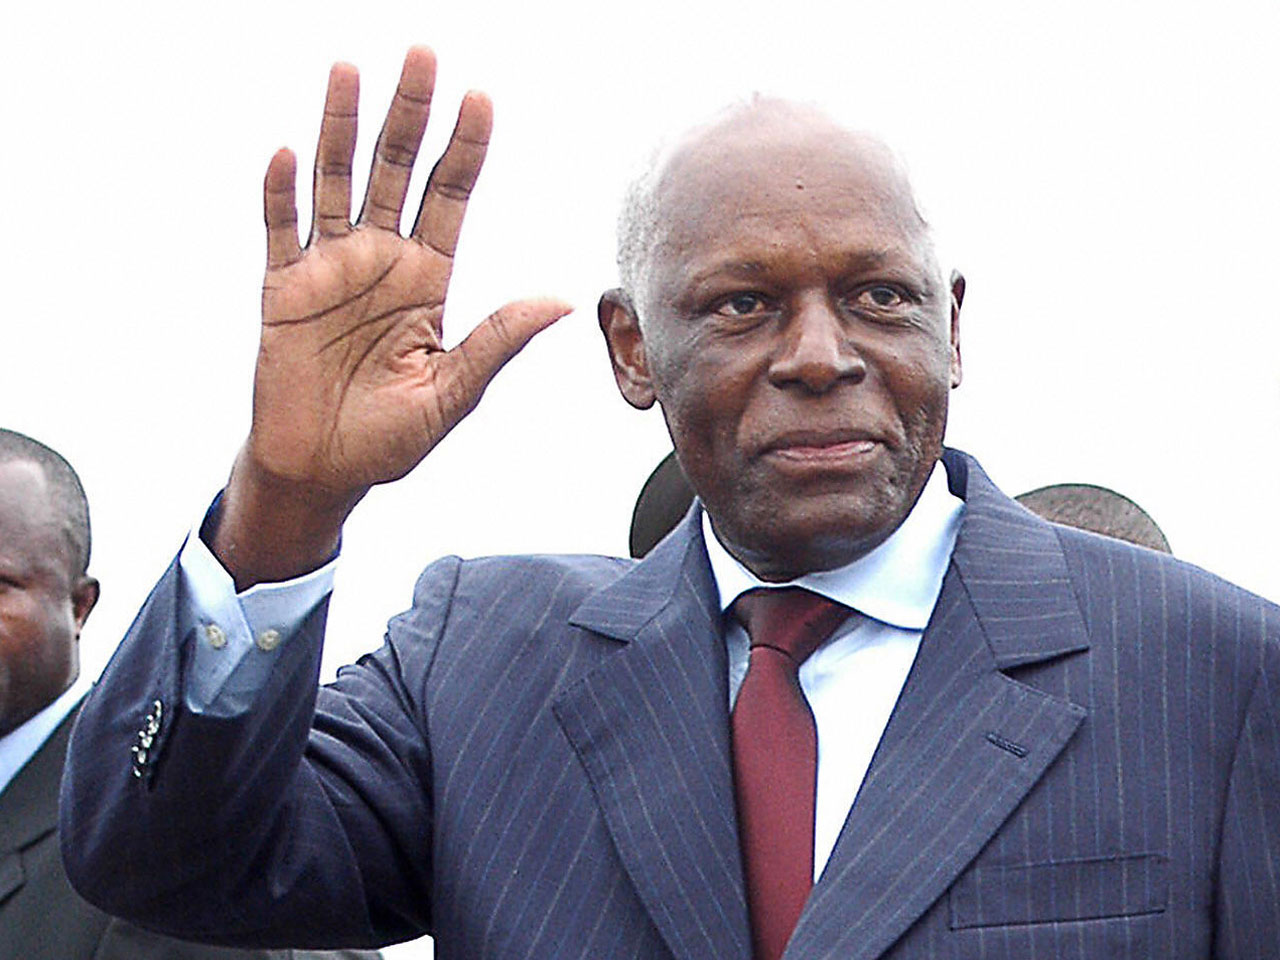 Life after power: the bitter exile of Angola's ex-President Dos Santos